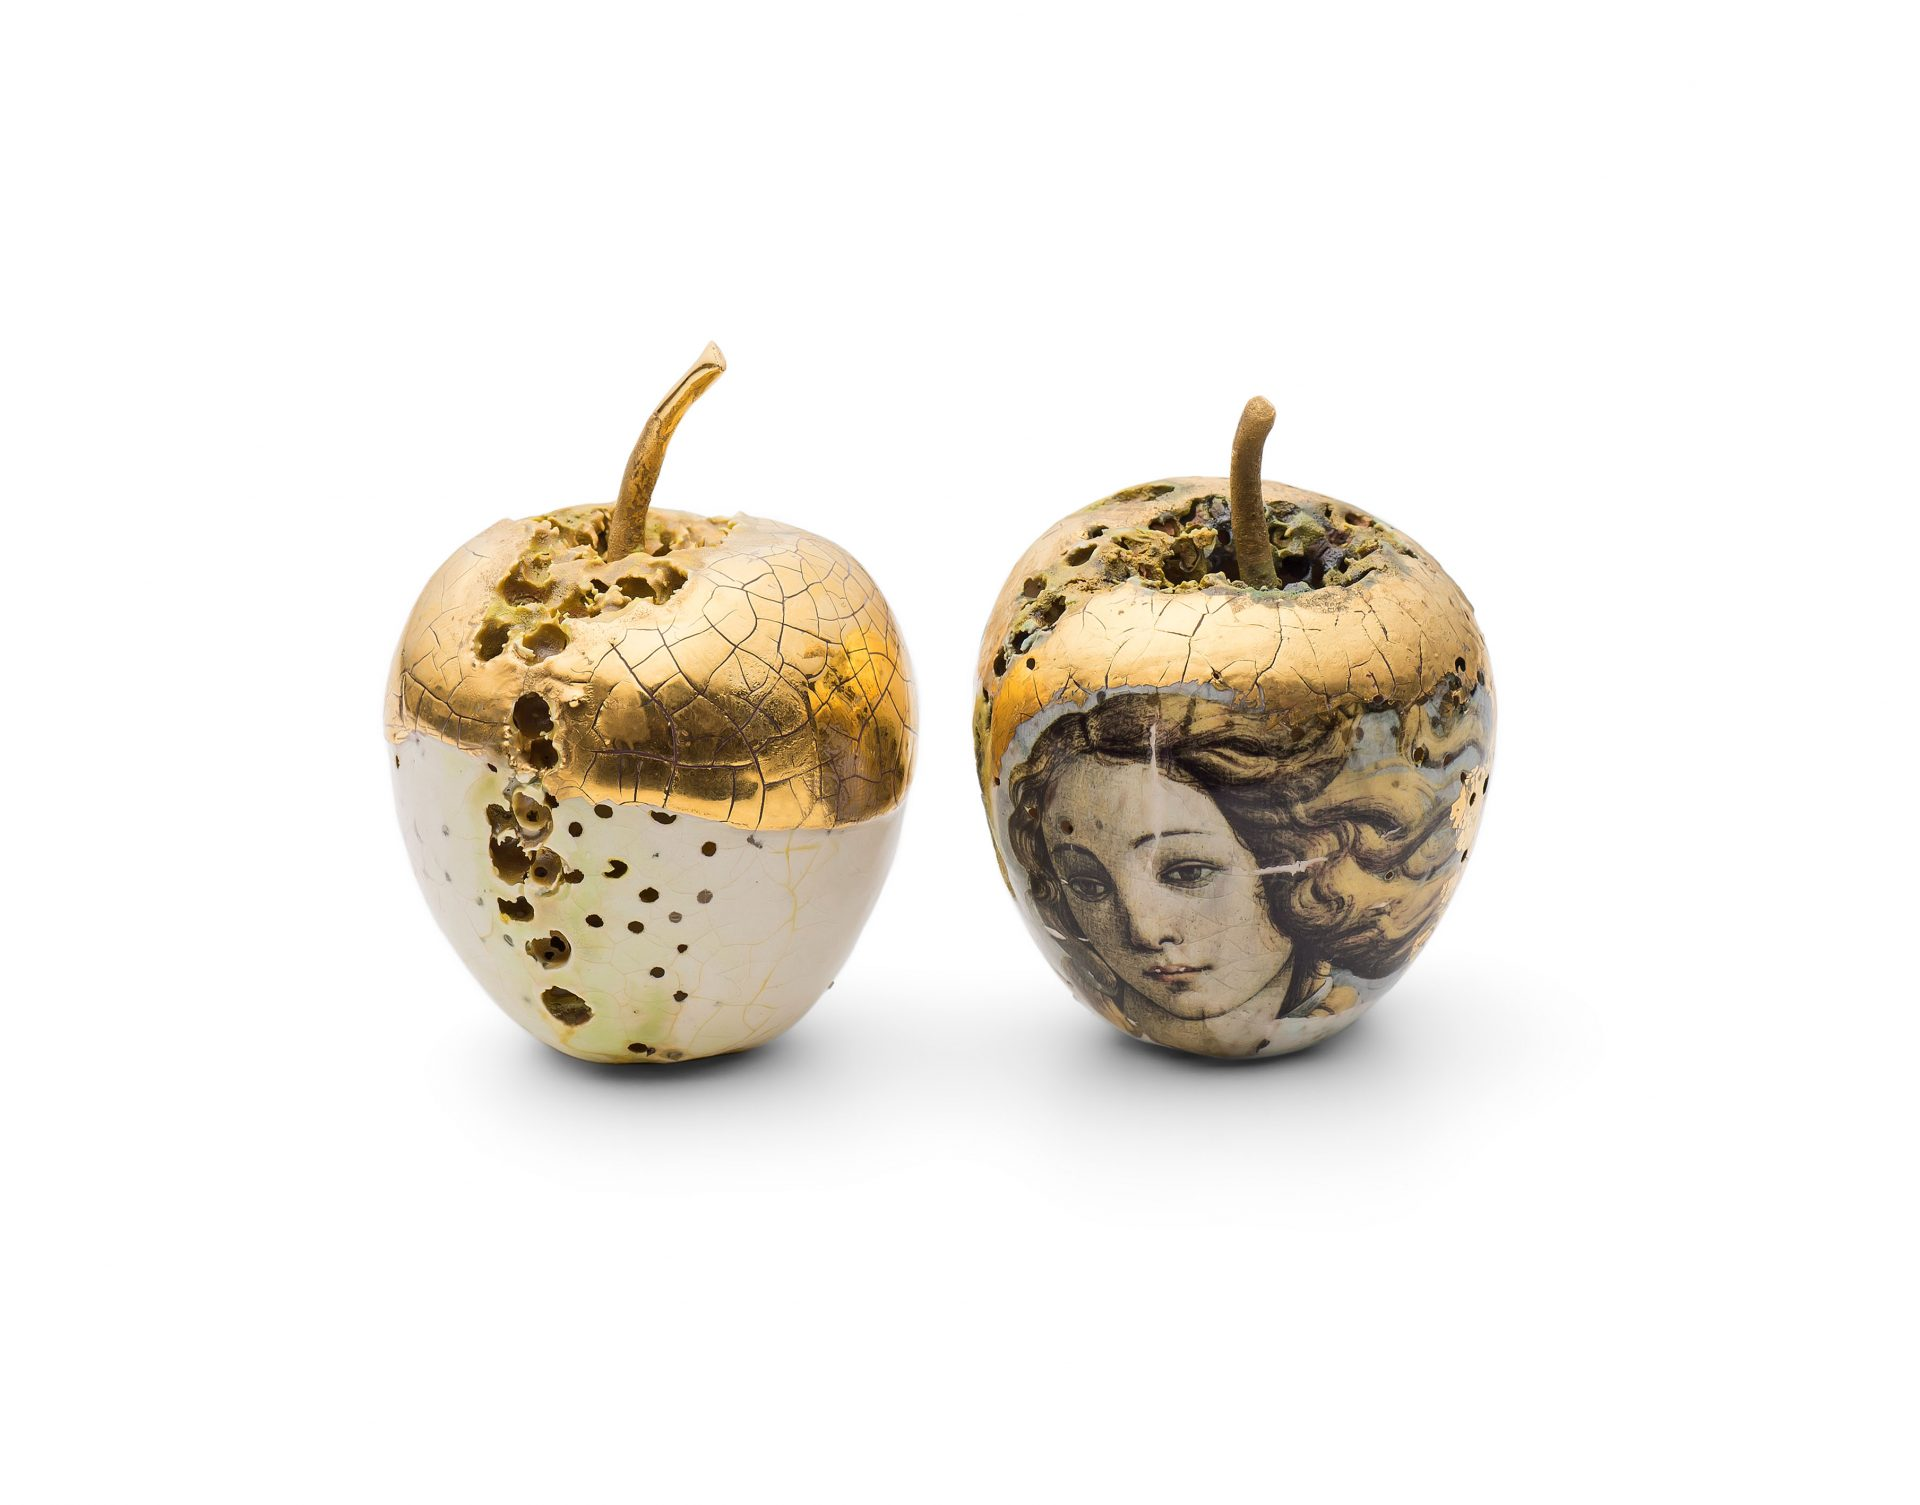 Gold and white ceramic apple by Remon Jephcott